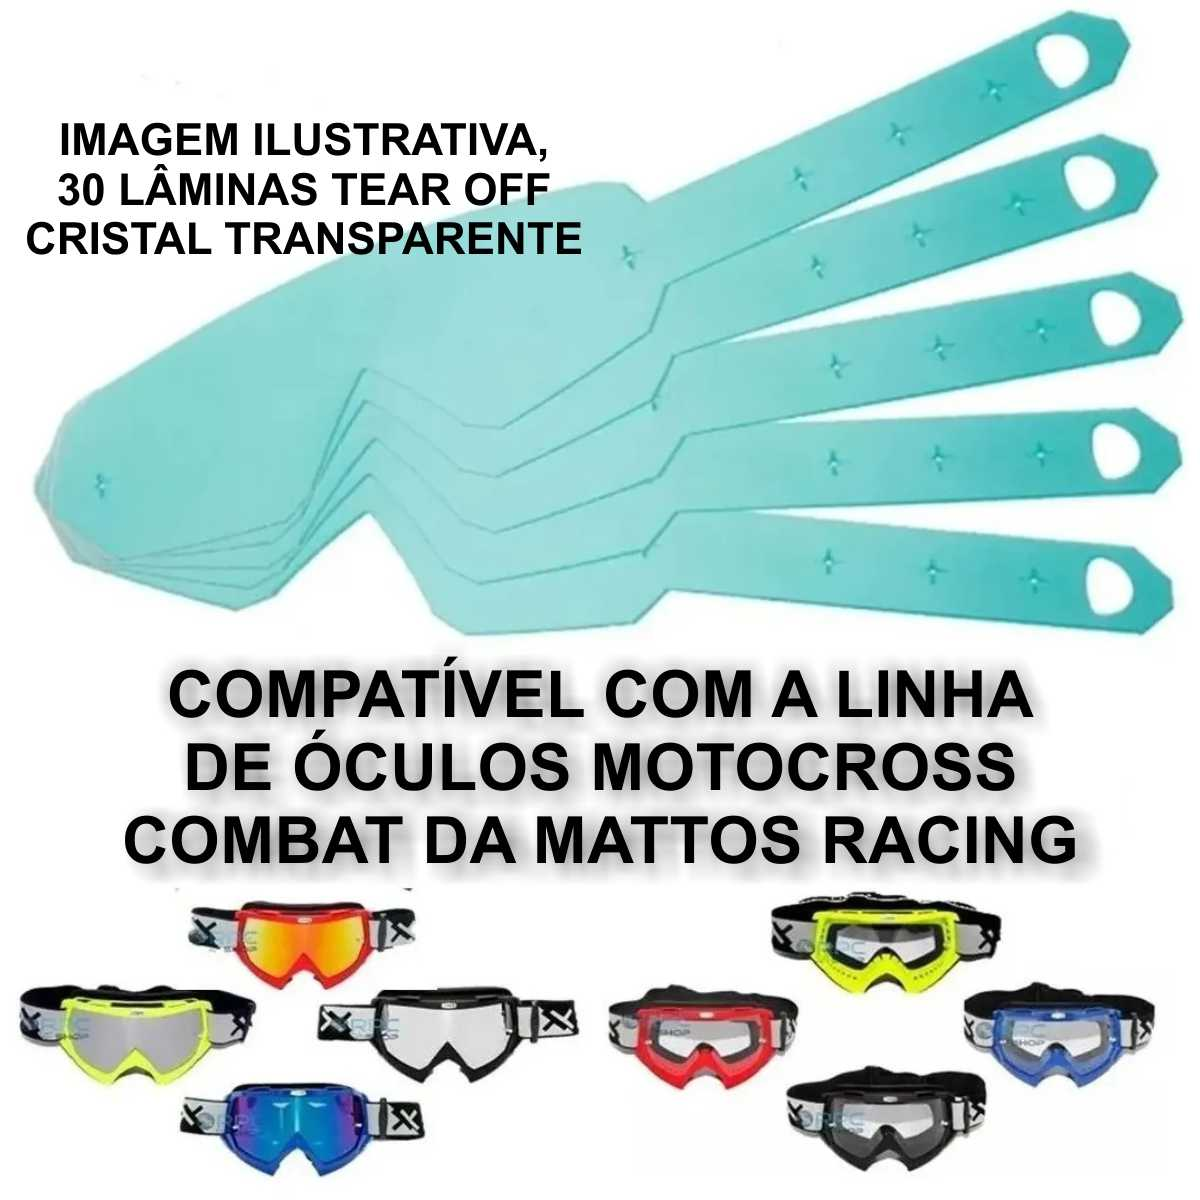 KIT 30 LÂMINA  TEAR OFF MATTOS RACING TRANSPARENTE PARA ÓCULOS CROSS MOTOCROSS TRILHA